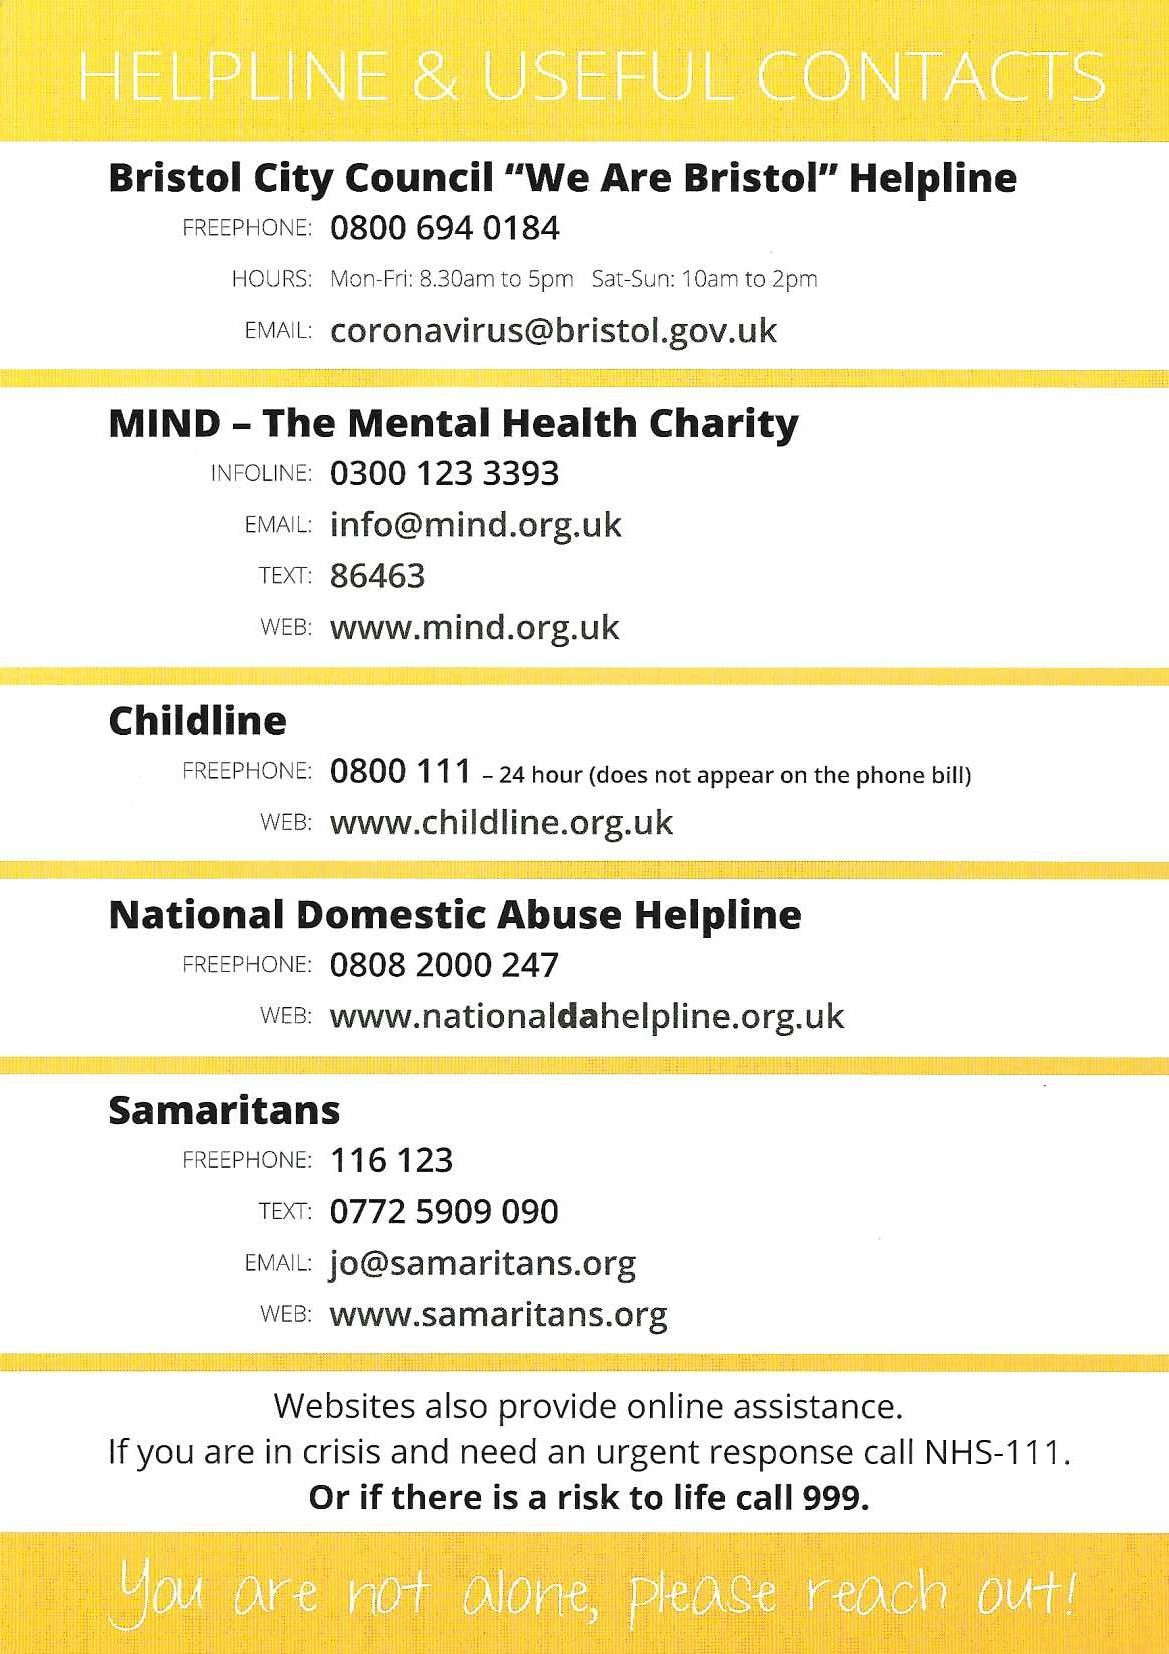 Helpline & Useful Contacts.jpg